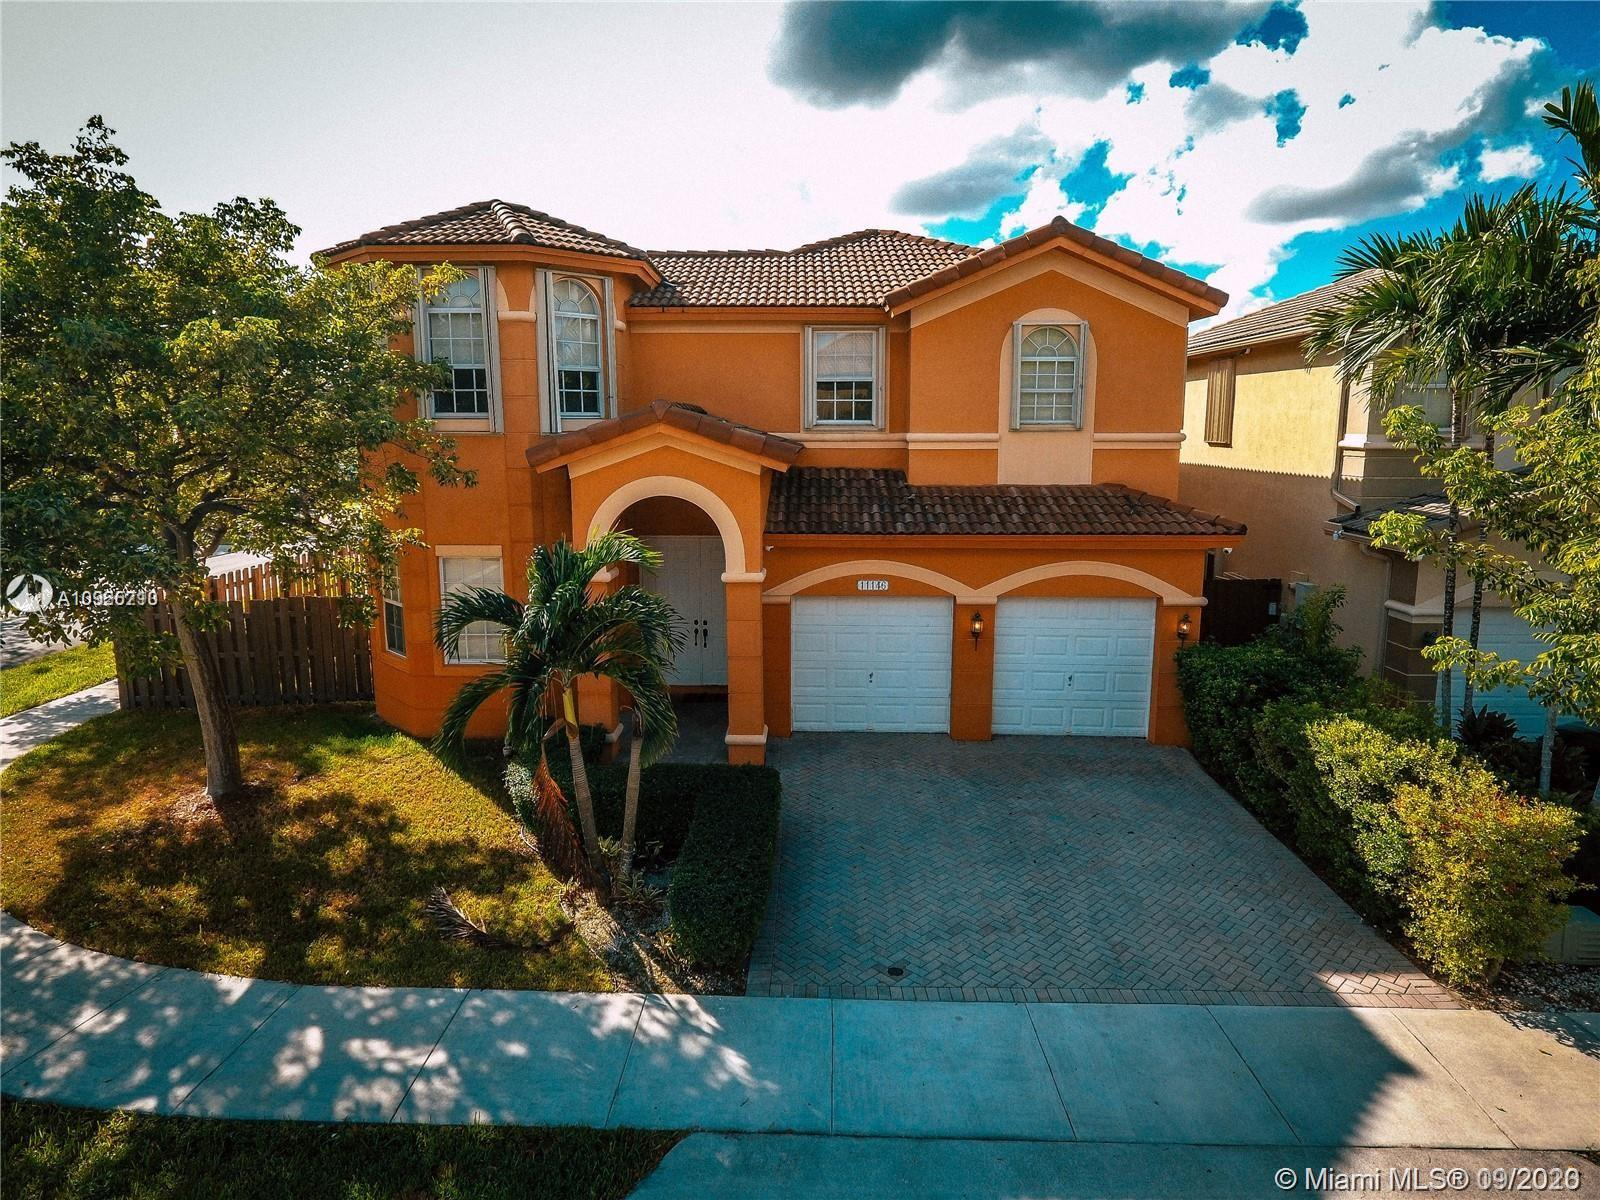 Islands At Doral - 11146 NW 79th Ln, Doral, FL 33178